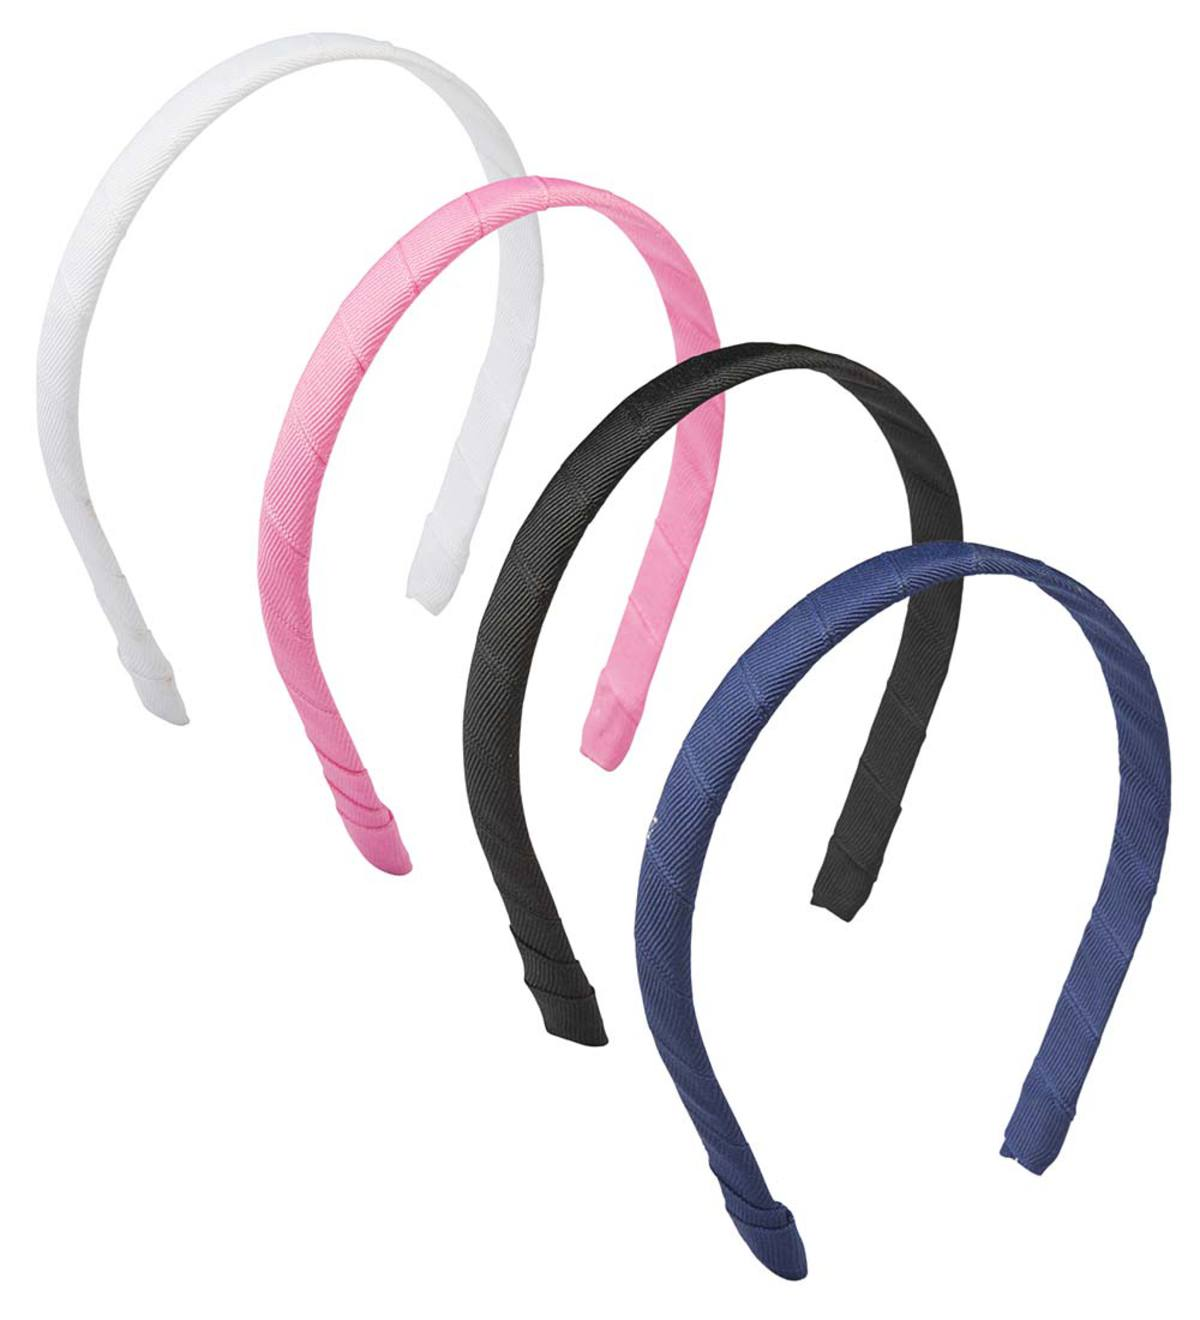 Grosgrain-Wrapped Headband - Pink - 1